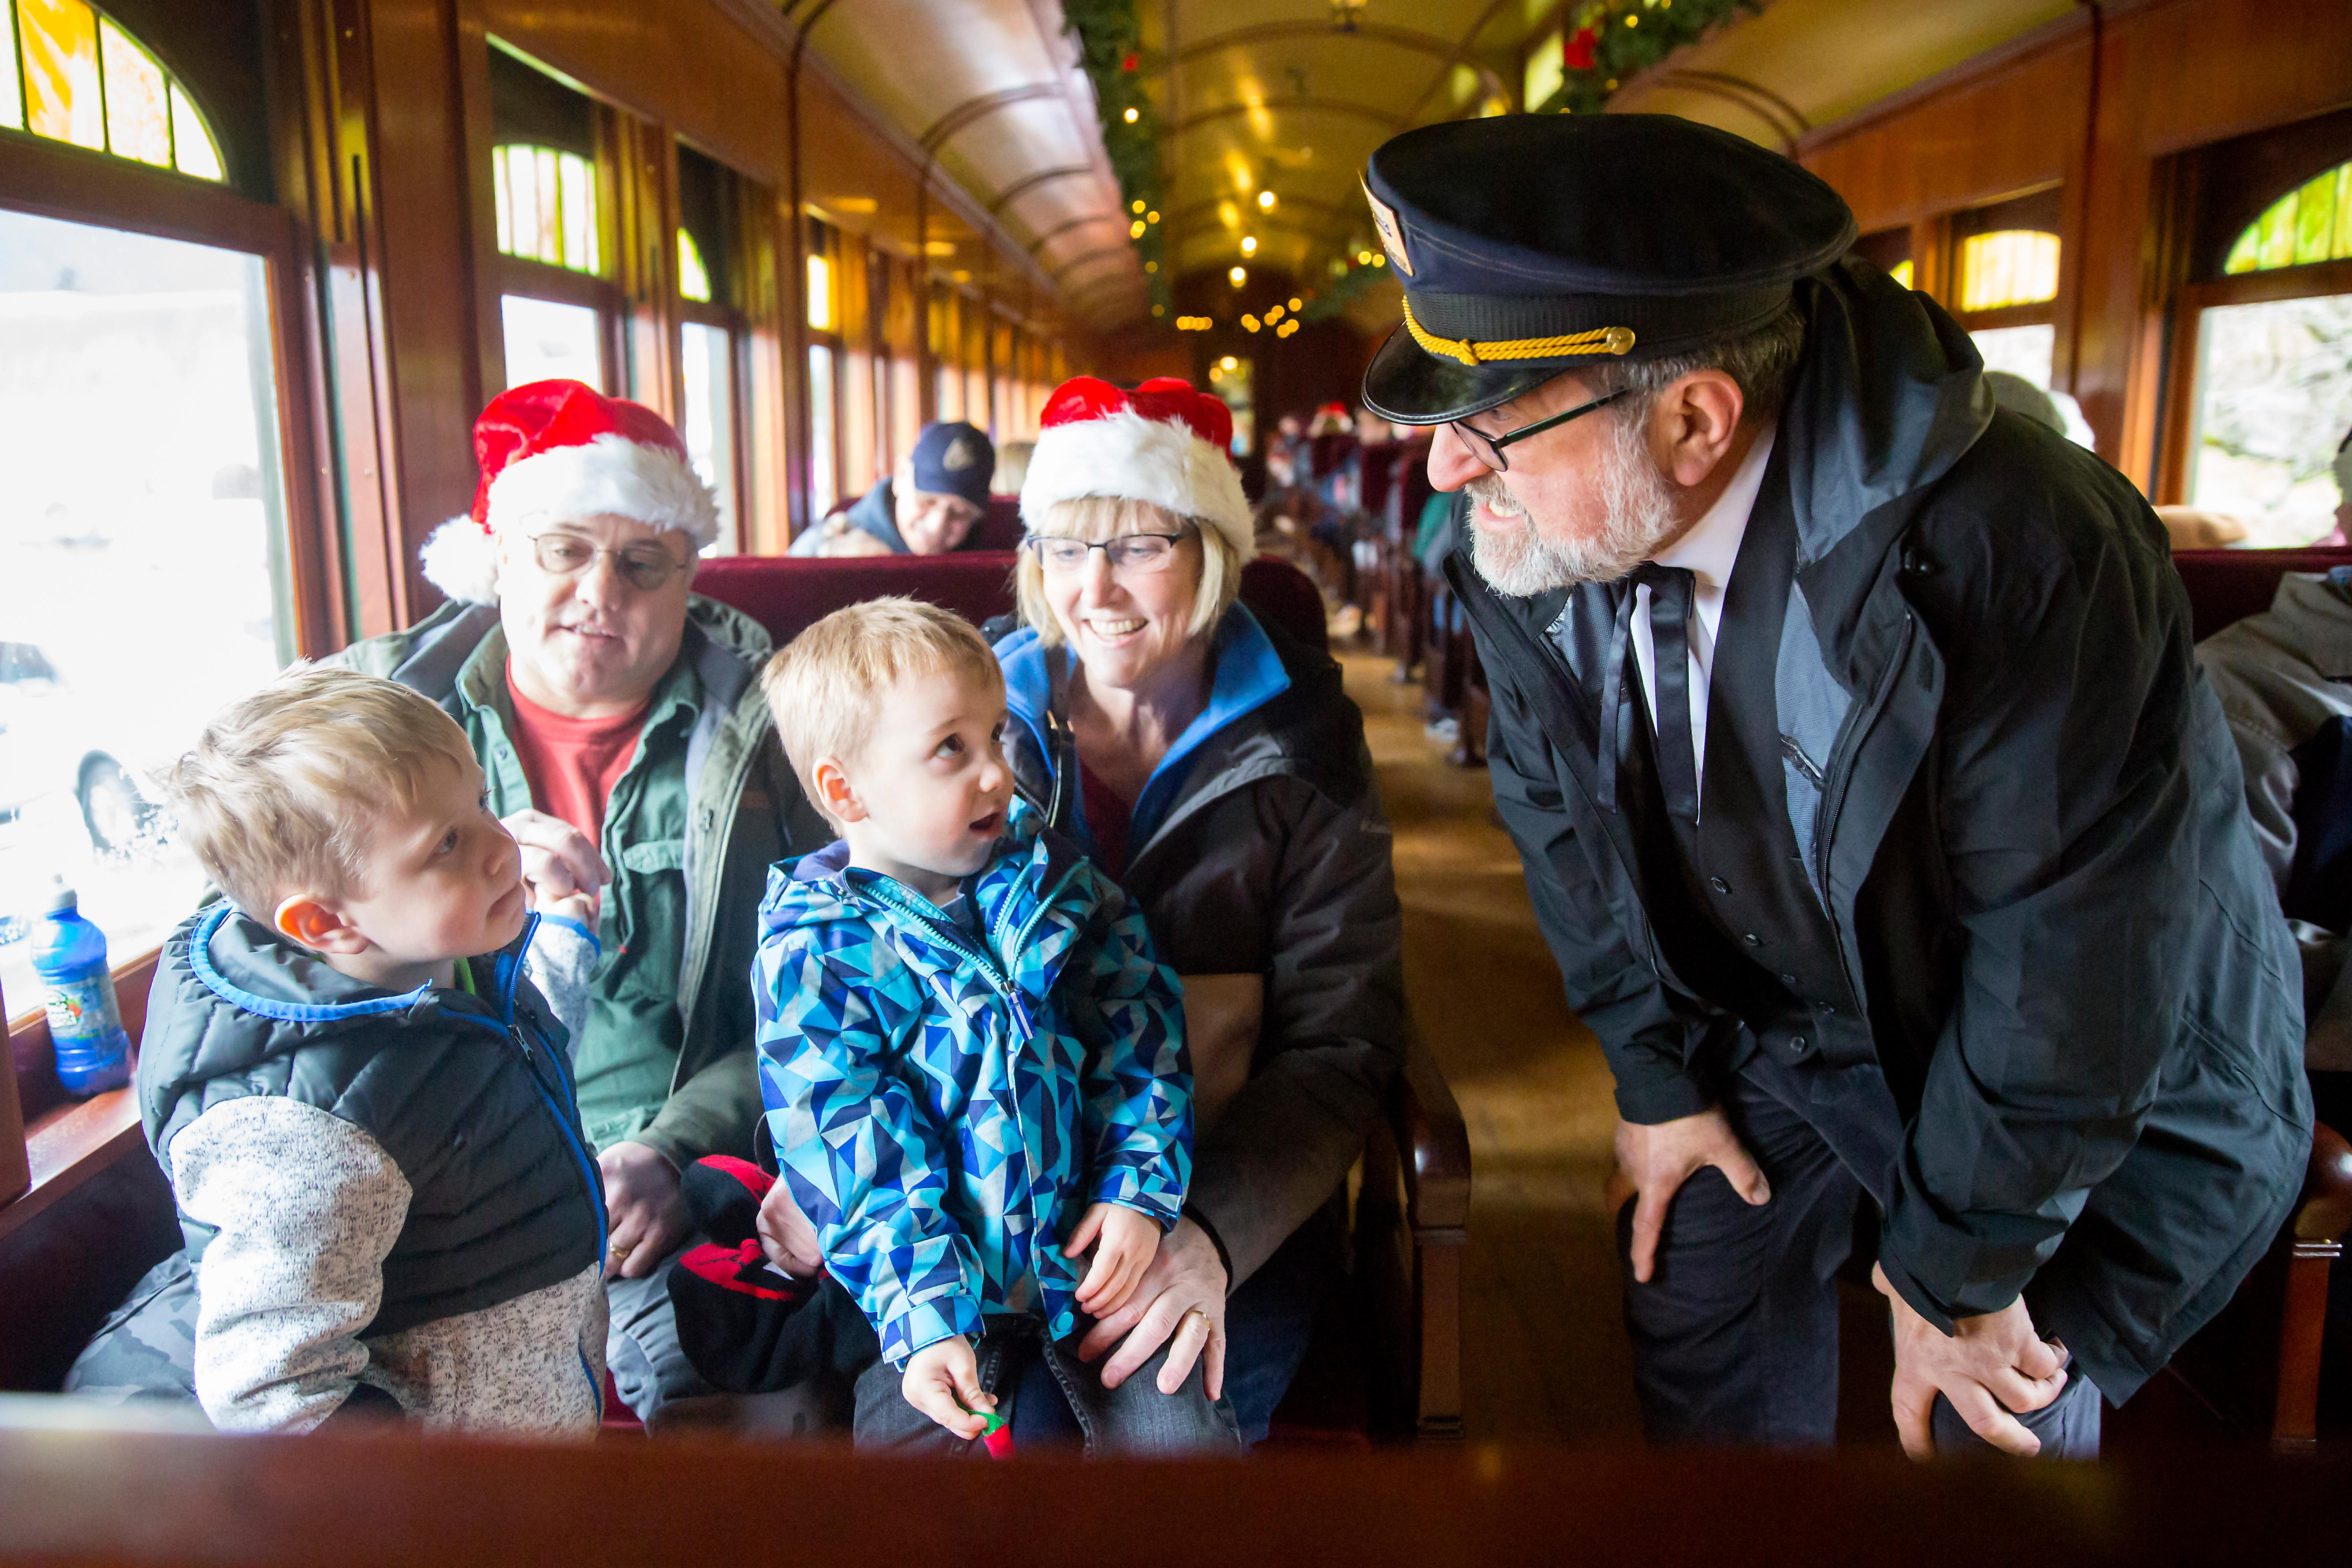 All aboard! Participants climb onto vintage railcars pulled by Locomotive 4012 during Santa Train - a four weekend holiday special put on by the Norhtwest Railway Museum. Guest board the train at the North Bend Depot and take a 3.5-mile journey to the Snoqualmie Depot where they are greet with sweet treats, hot drinks, and a gift from Santa Clause. The Snoqualmie Depot was orignially built in 1890. (Sy Bean / Seattle Refined)